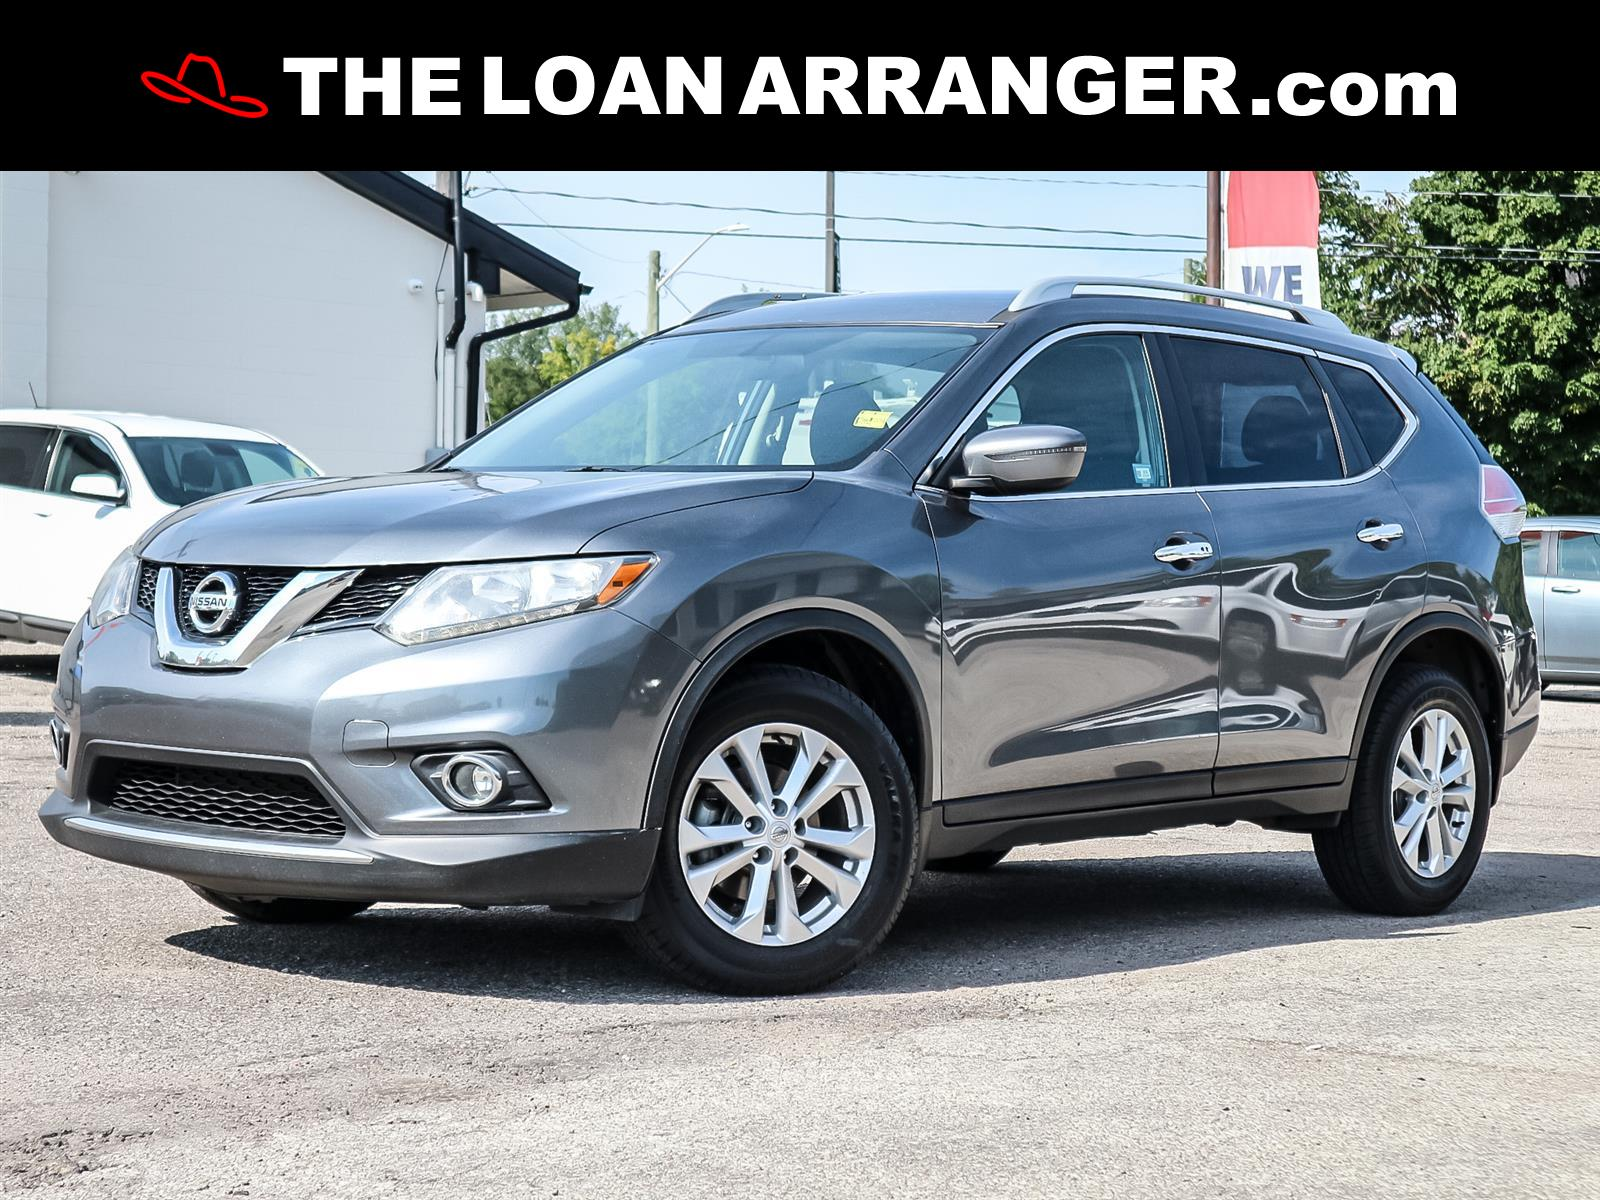 used 2016 Nissan Rogue car